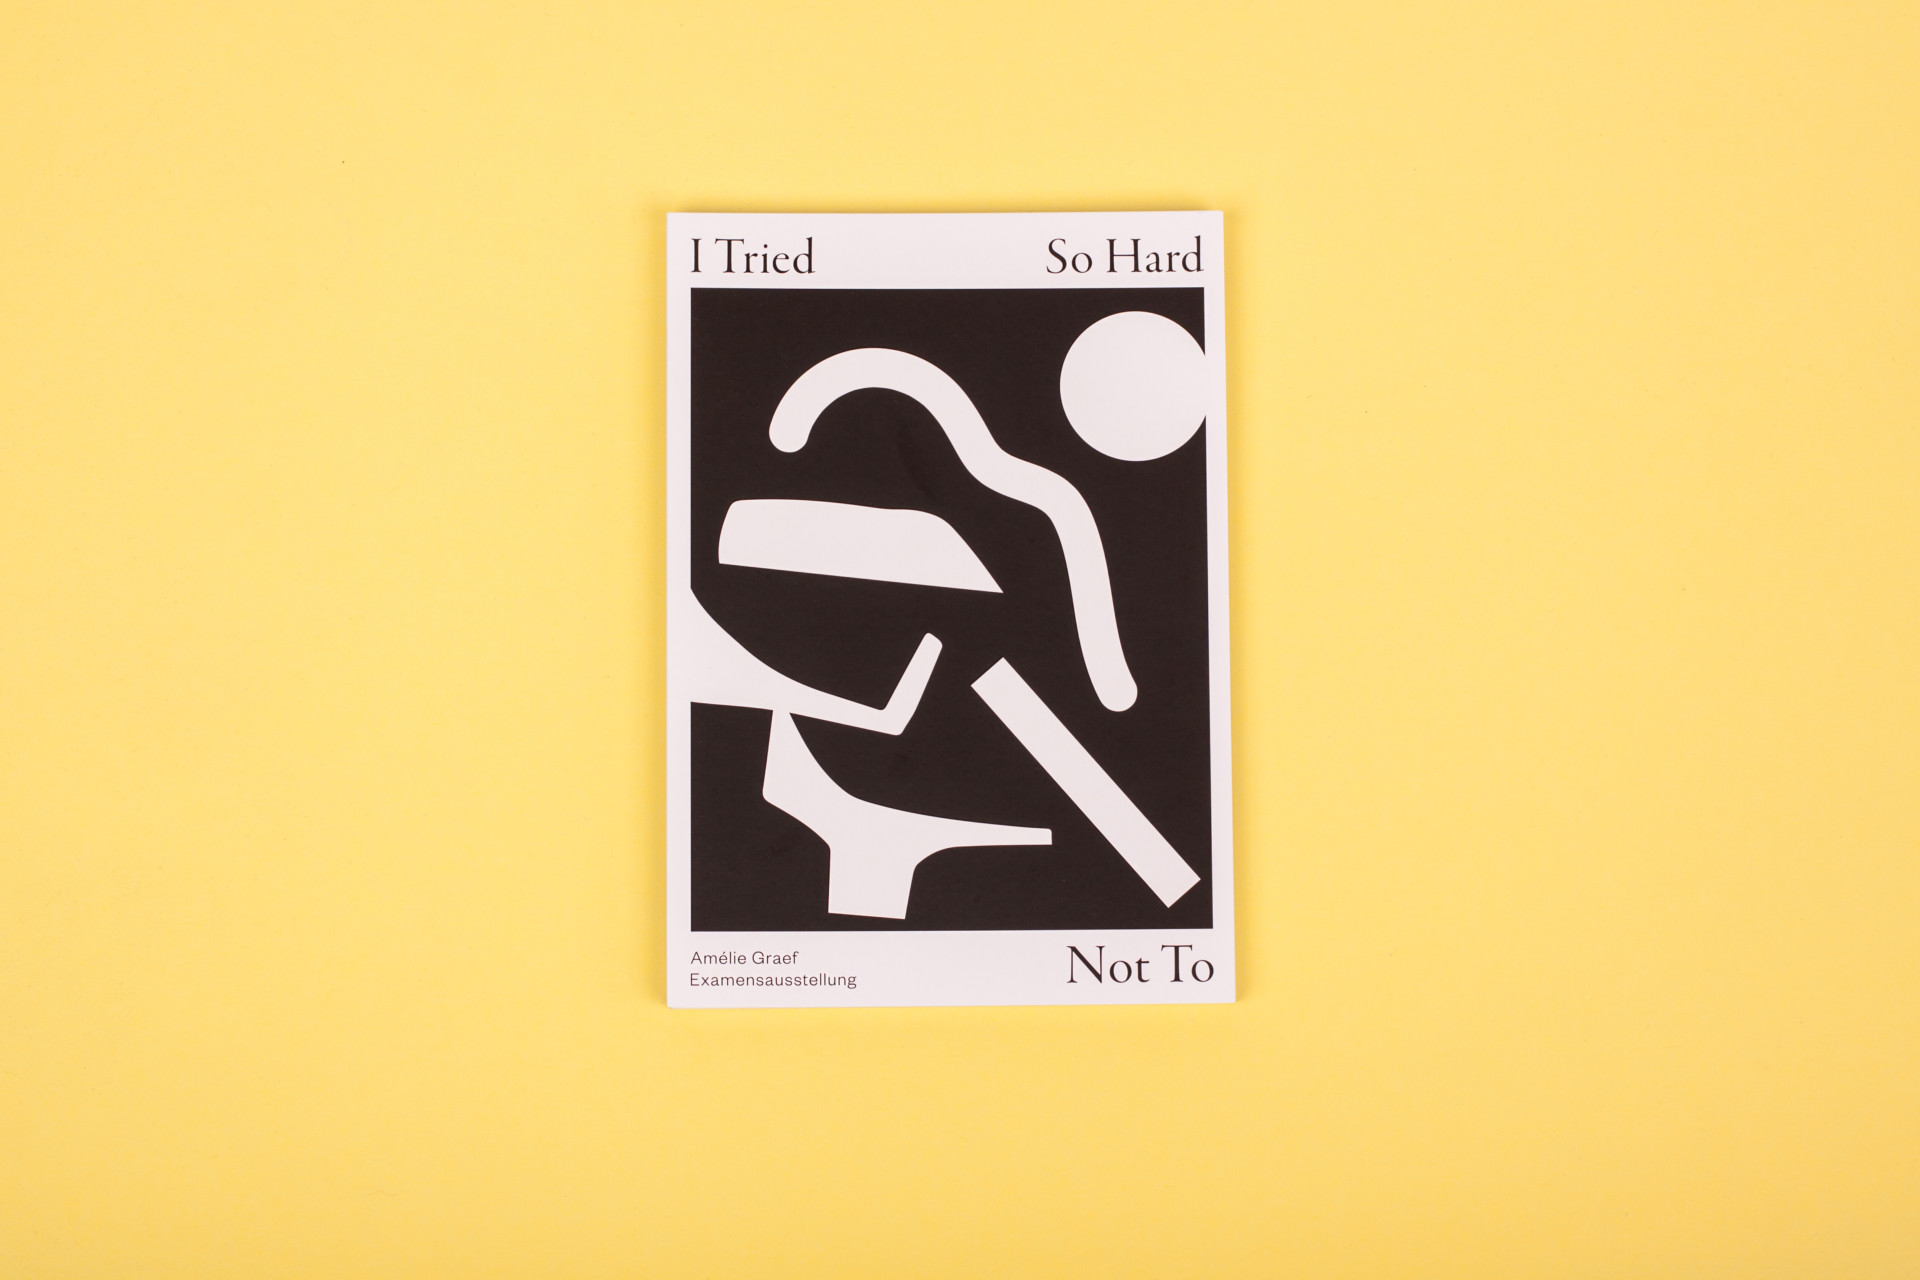 Amélie Graef – Graphicdesign & Art Direction I Tried So Hard Not To